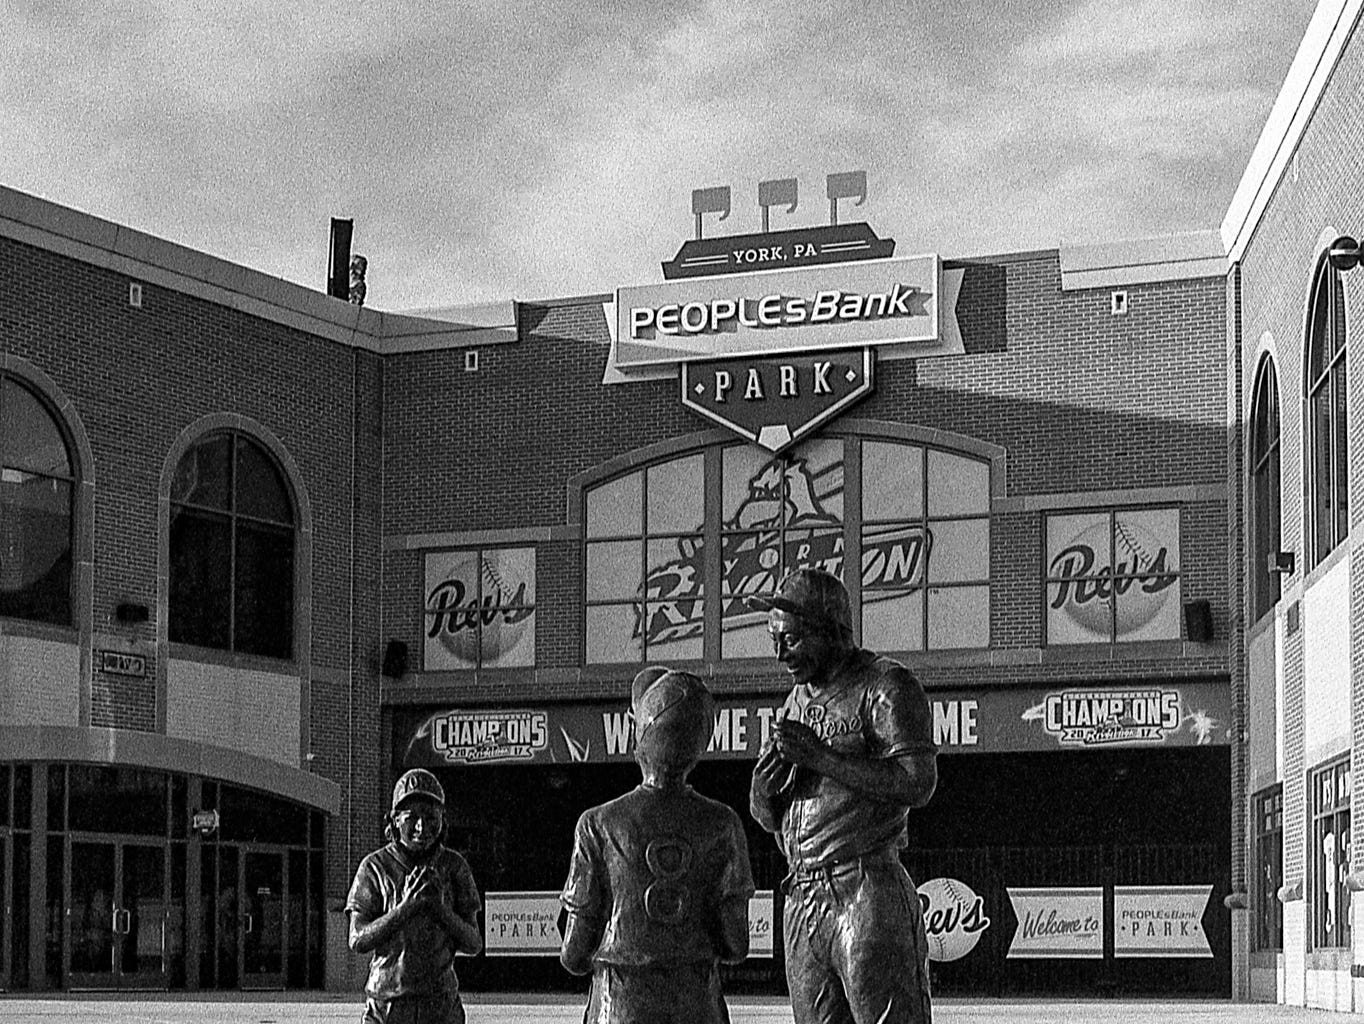 Statues outside of People's Bank Park. [Pentax KX] [Kodak Tri-X 400]